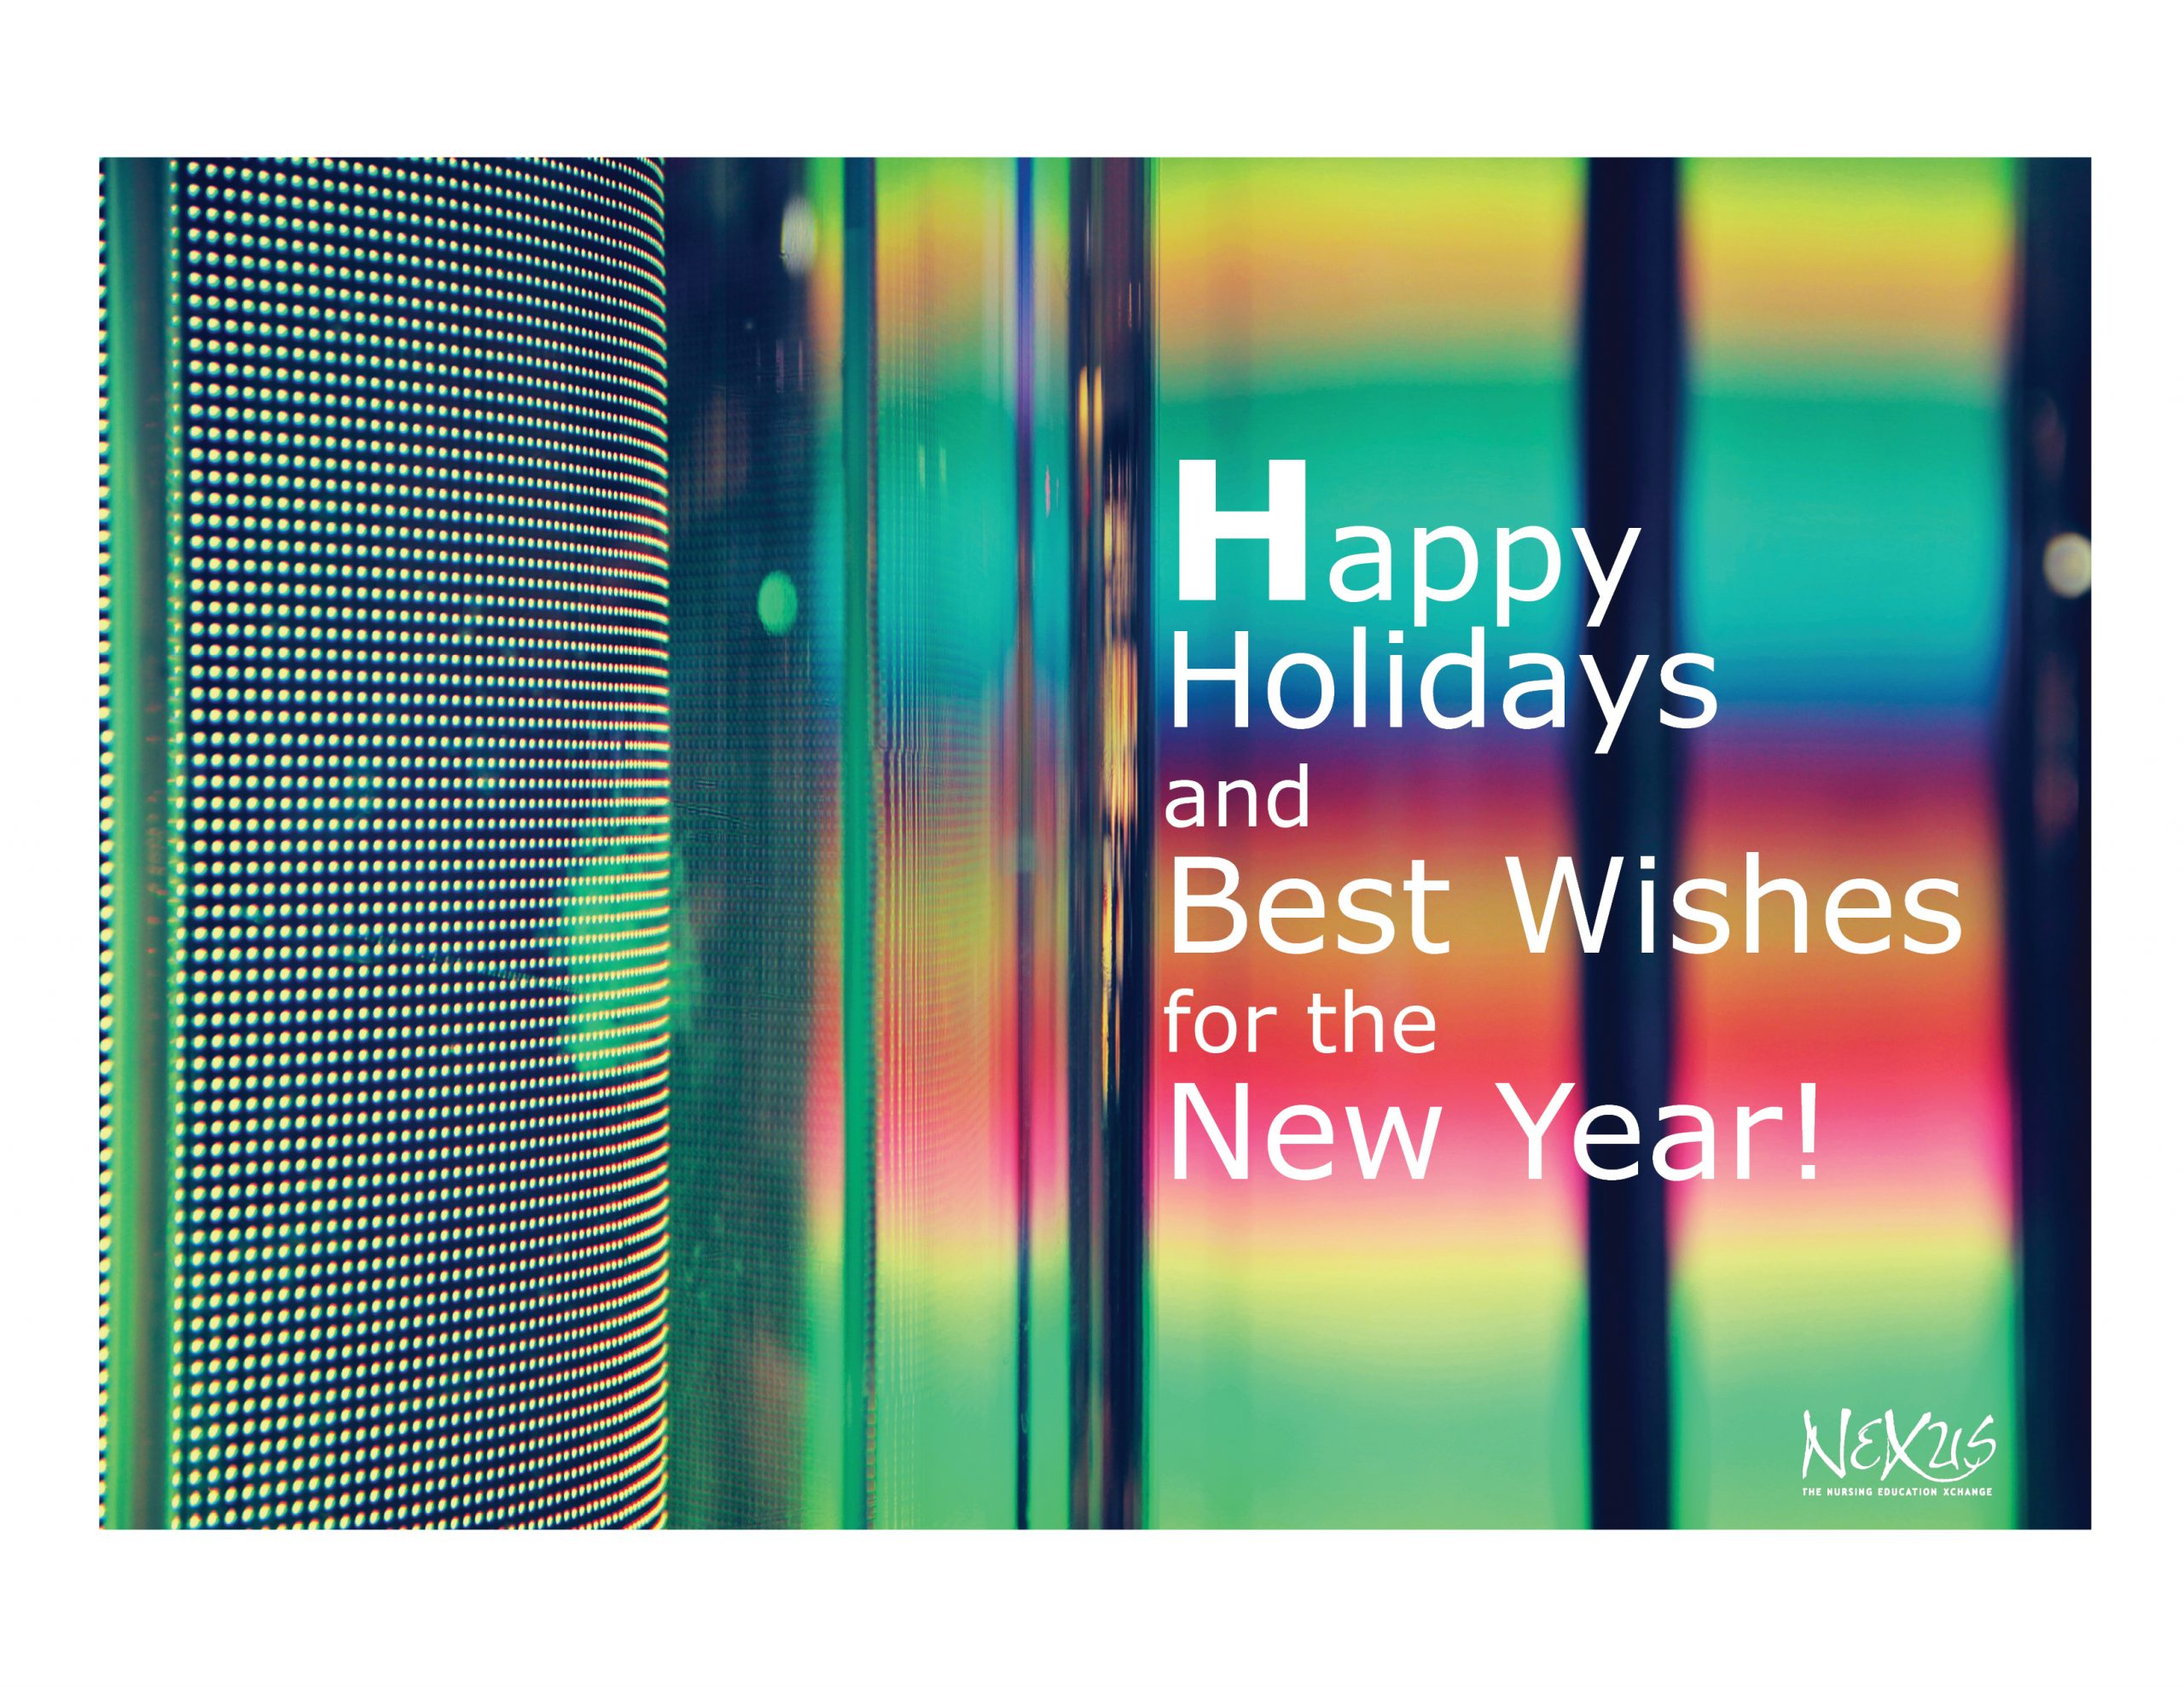 Abstract colorful image with text overlay of Happy Holiday and Best Wishes for the New Year!